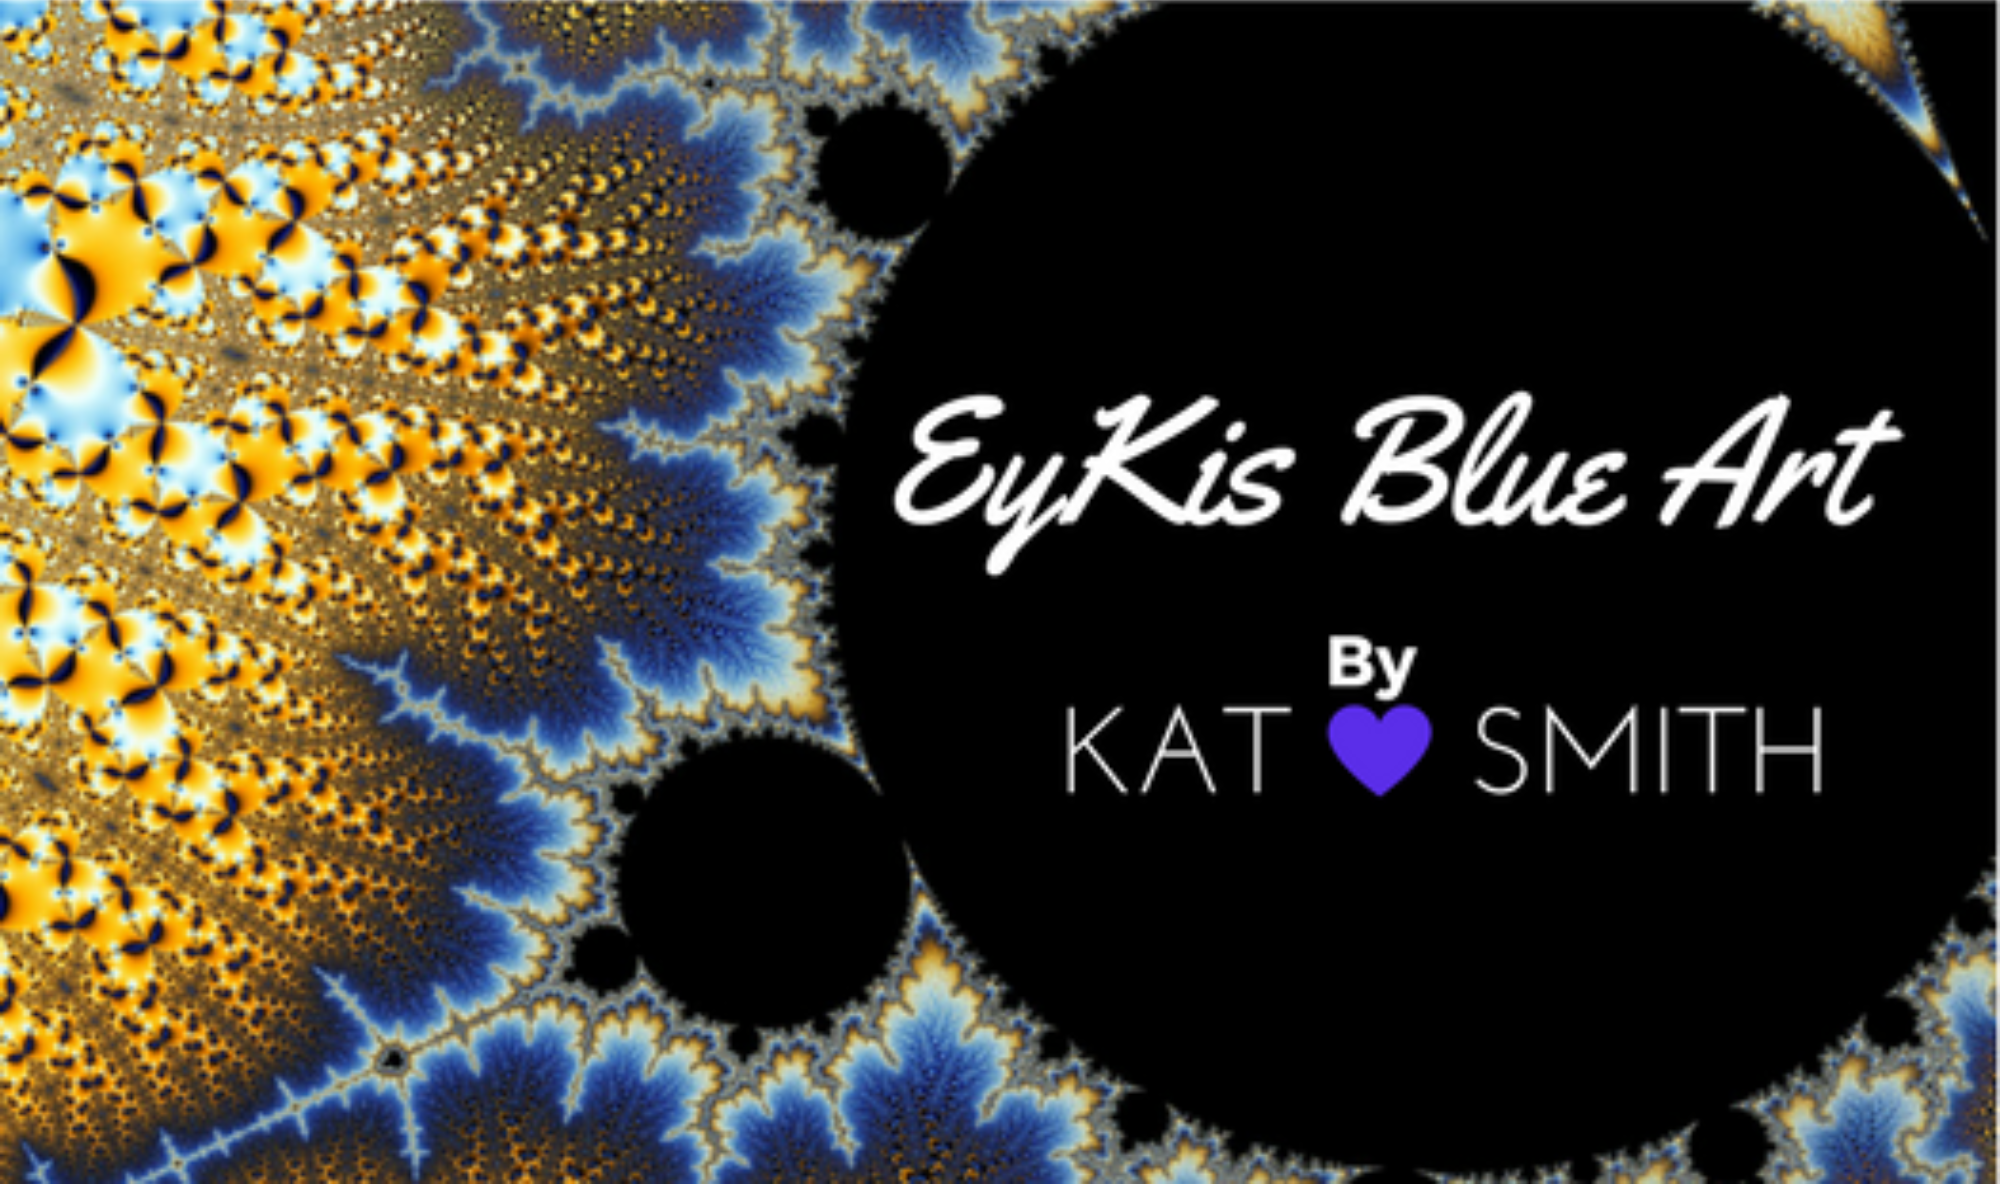 Eykis Blue